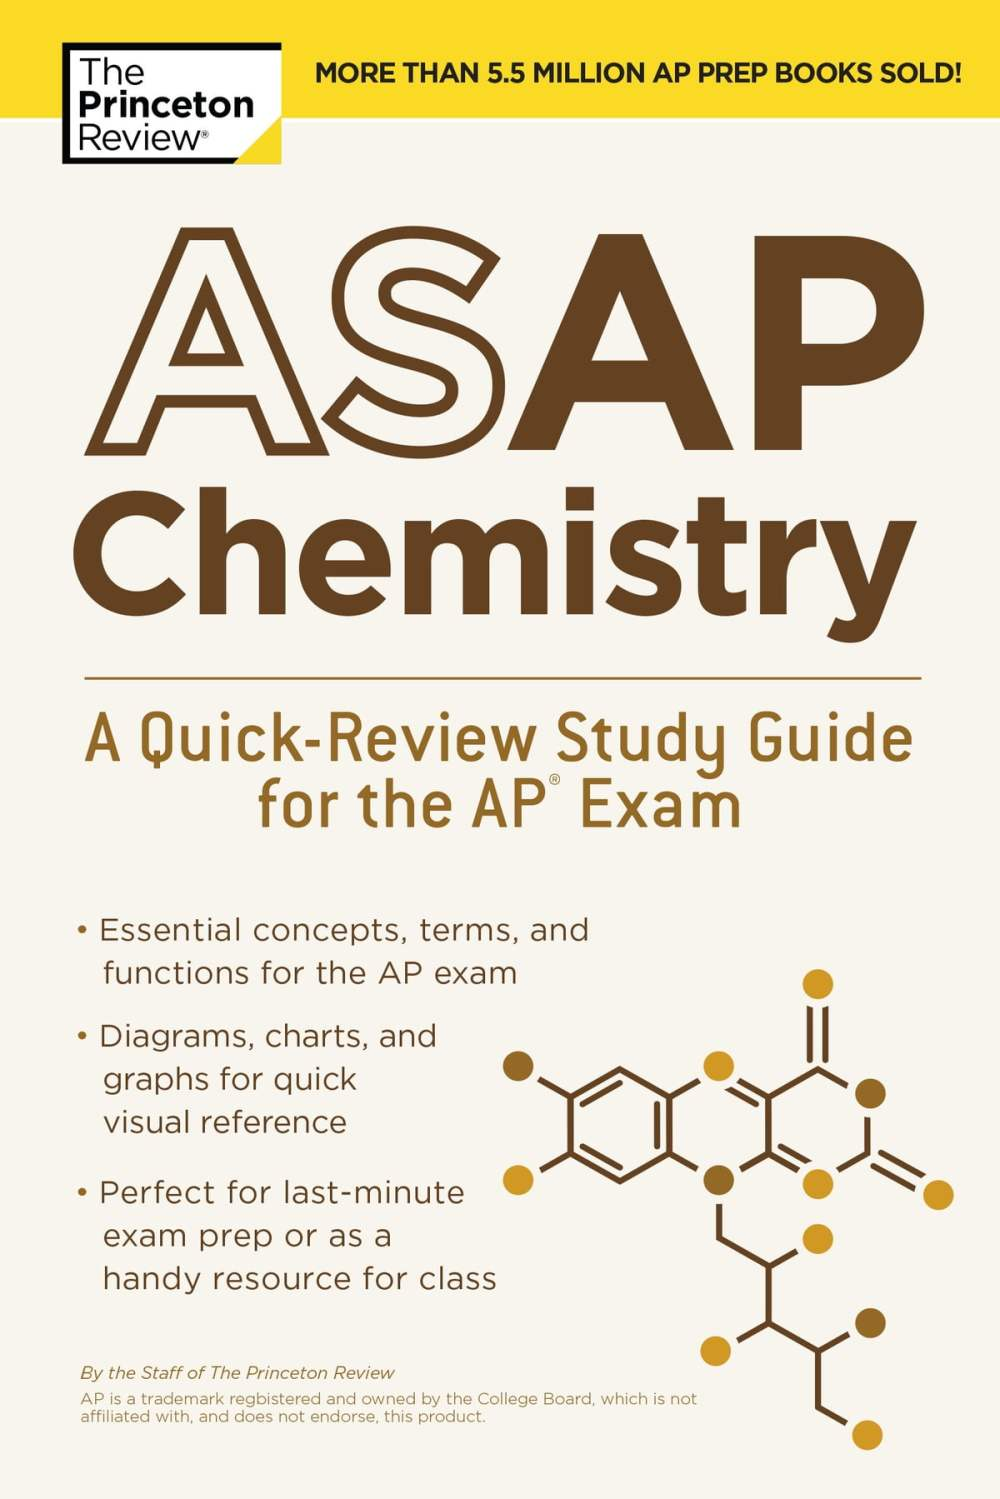 medium resolution of asap chemistry a quick review study guide for the ap exam ebook by the princeton review 9780525567783 rakuten kobo